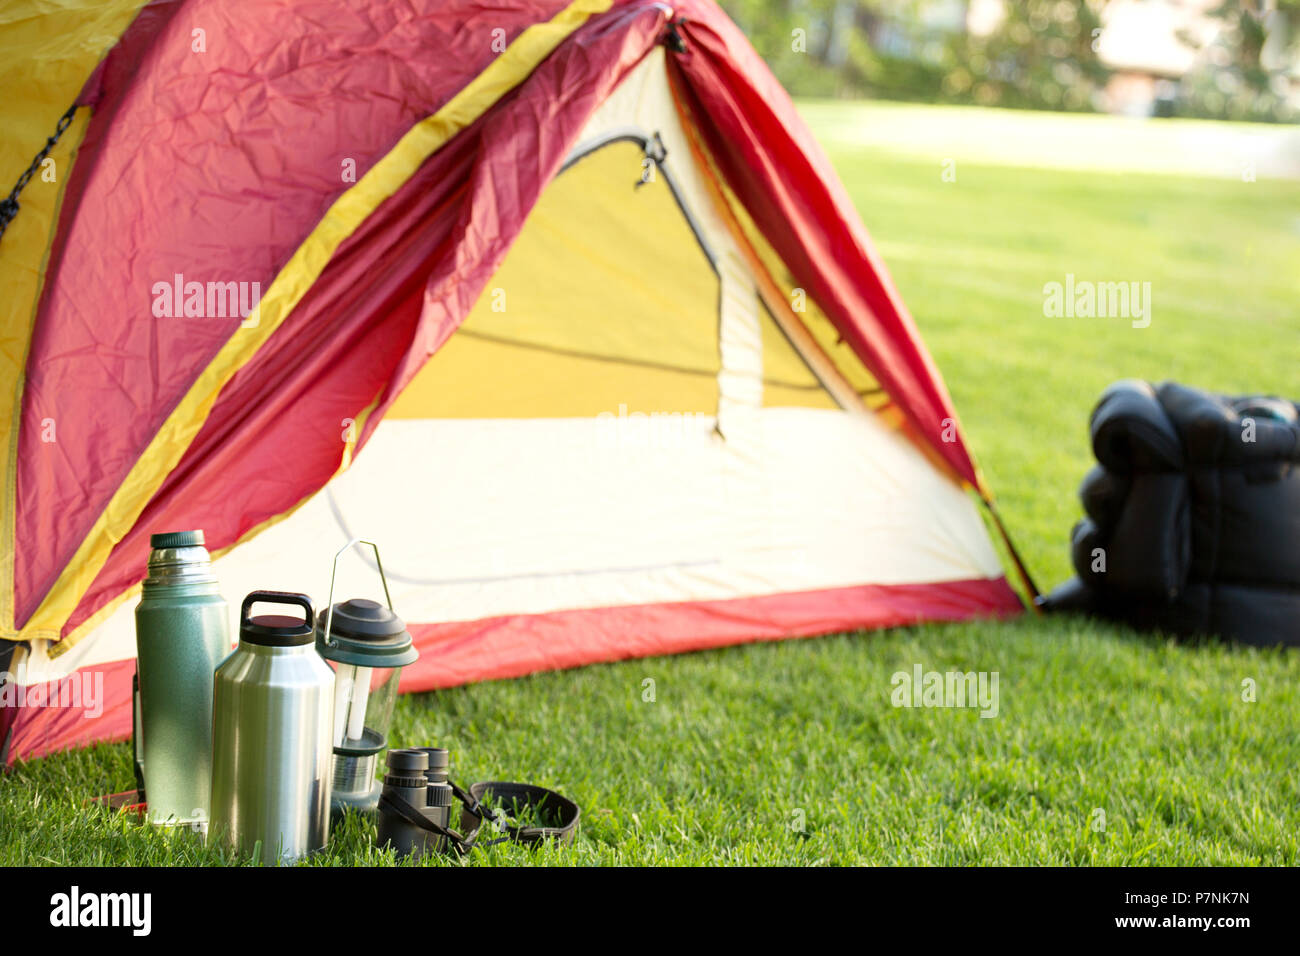 Camping backgrounds with copy space. - Stock Image